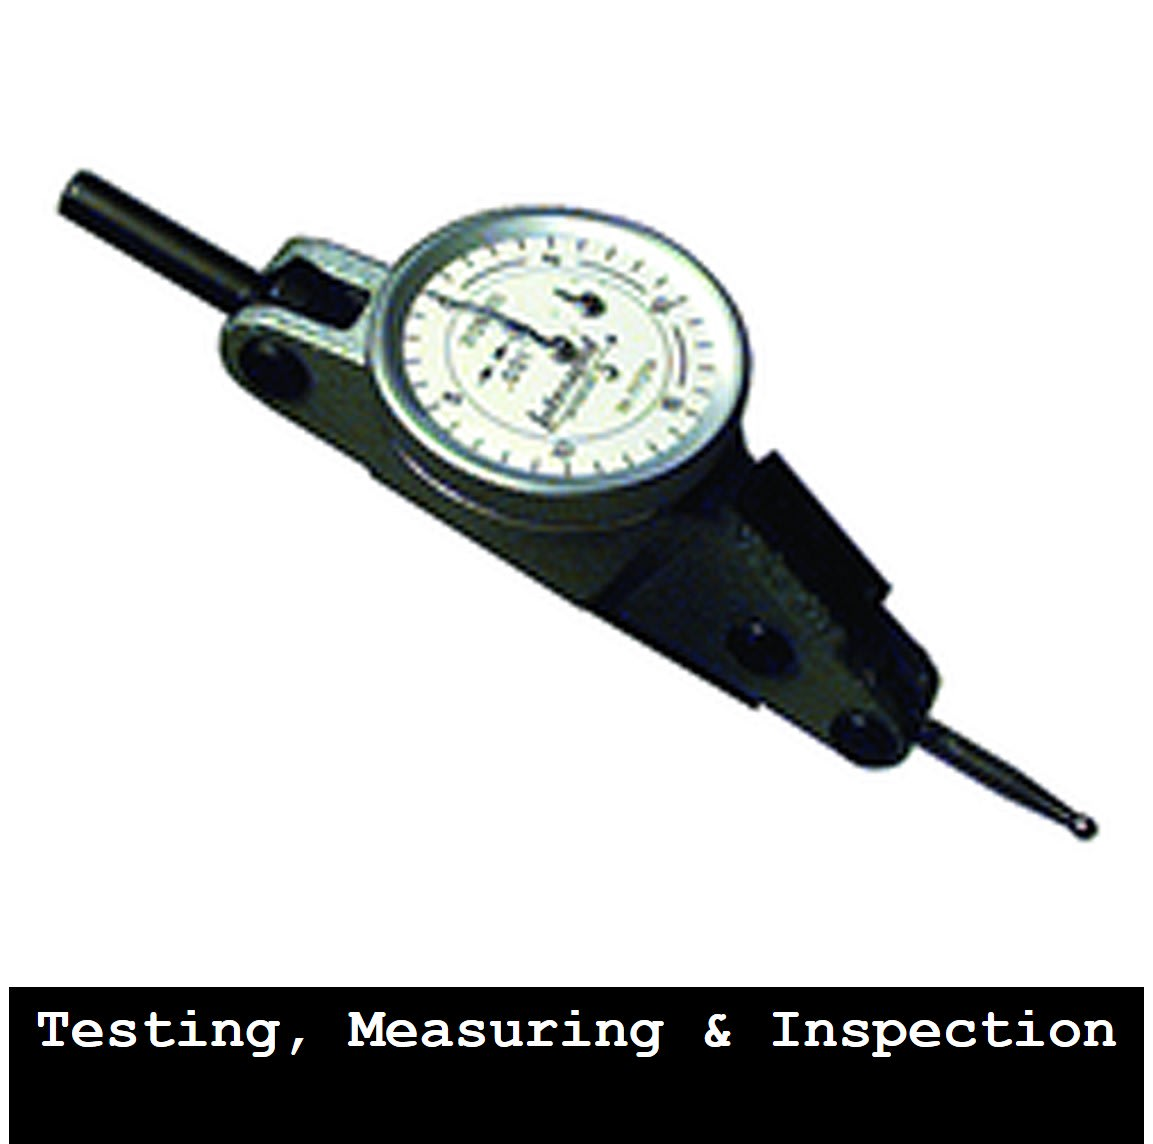 Testing, Measuring & Inspection | Smith Industrial Supply | Port Colborne Industrial Supply